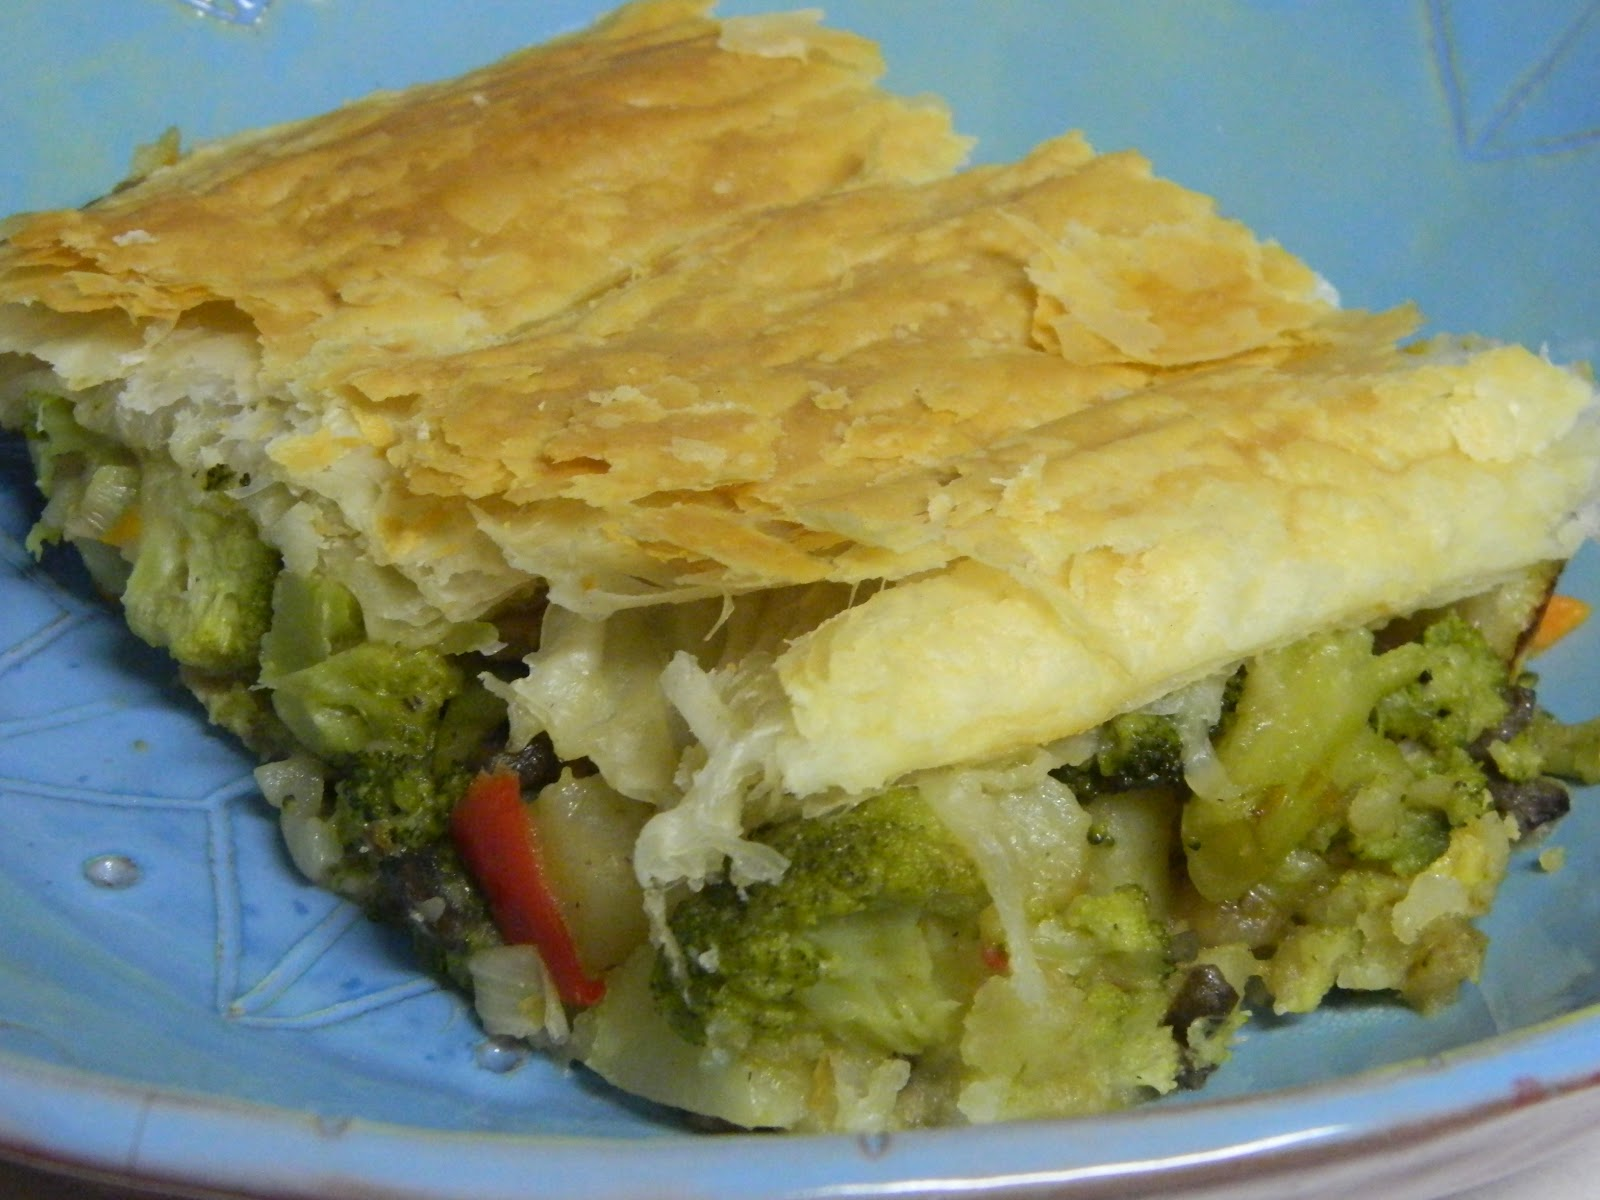 Erica in the City: Easy Vegetable Pot Pie